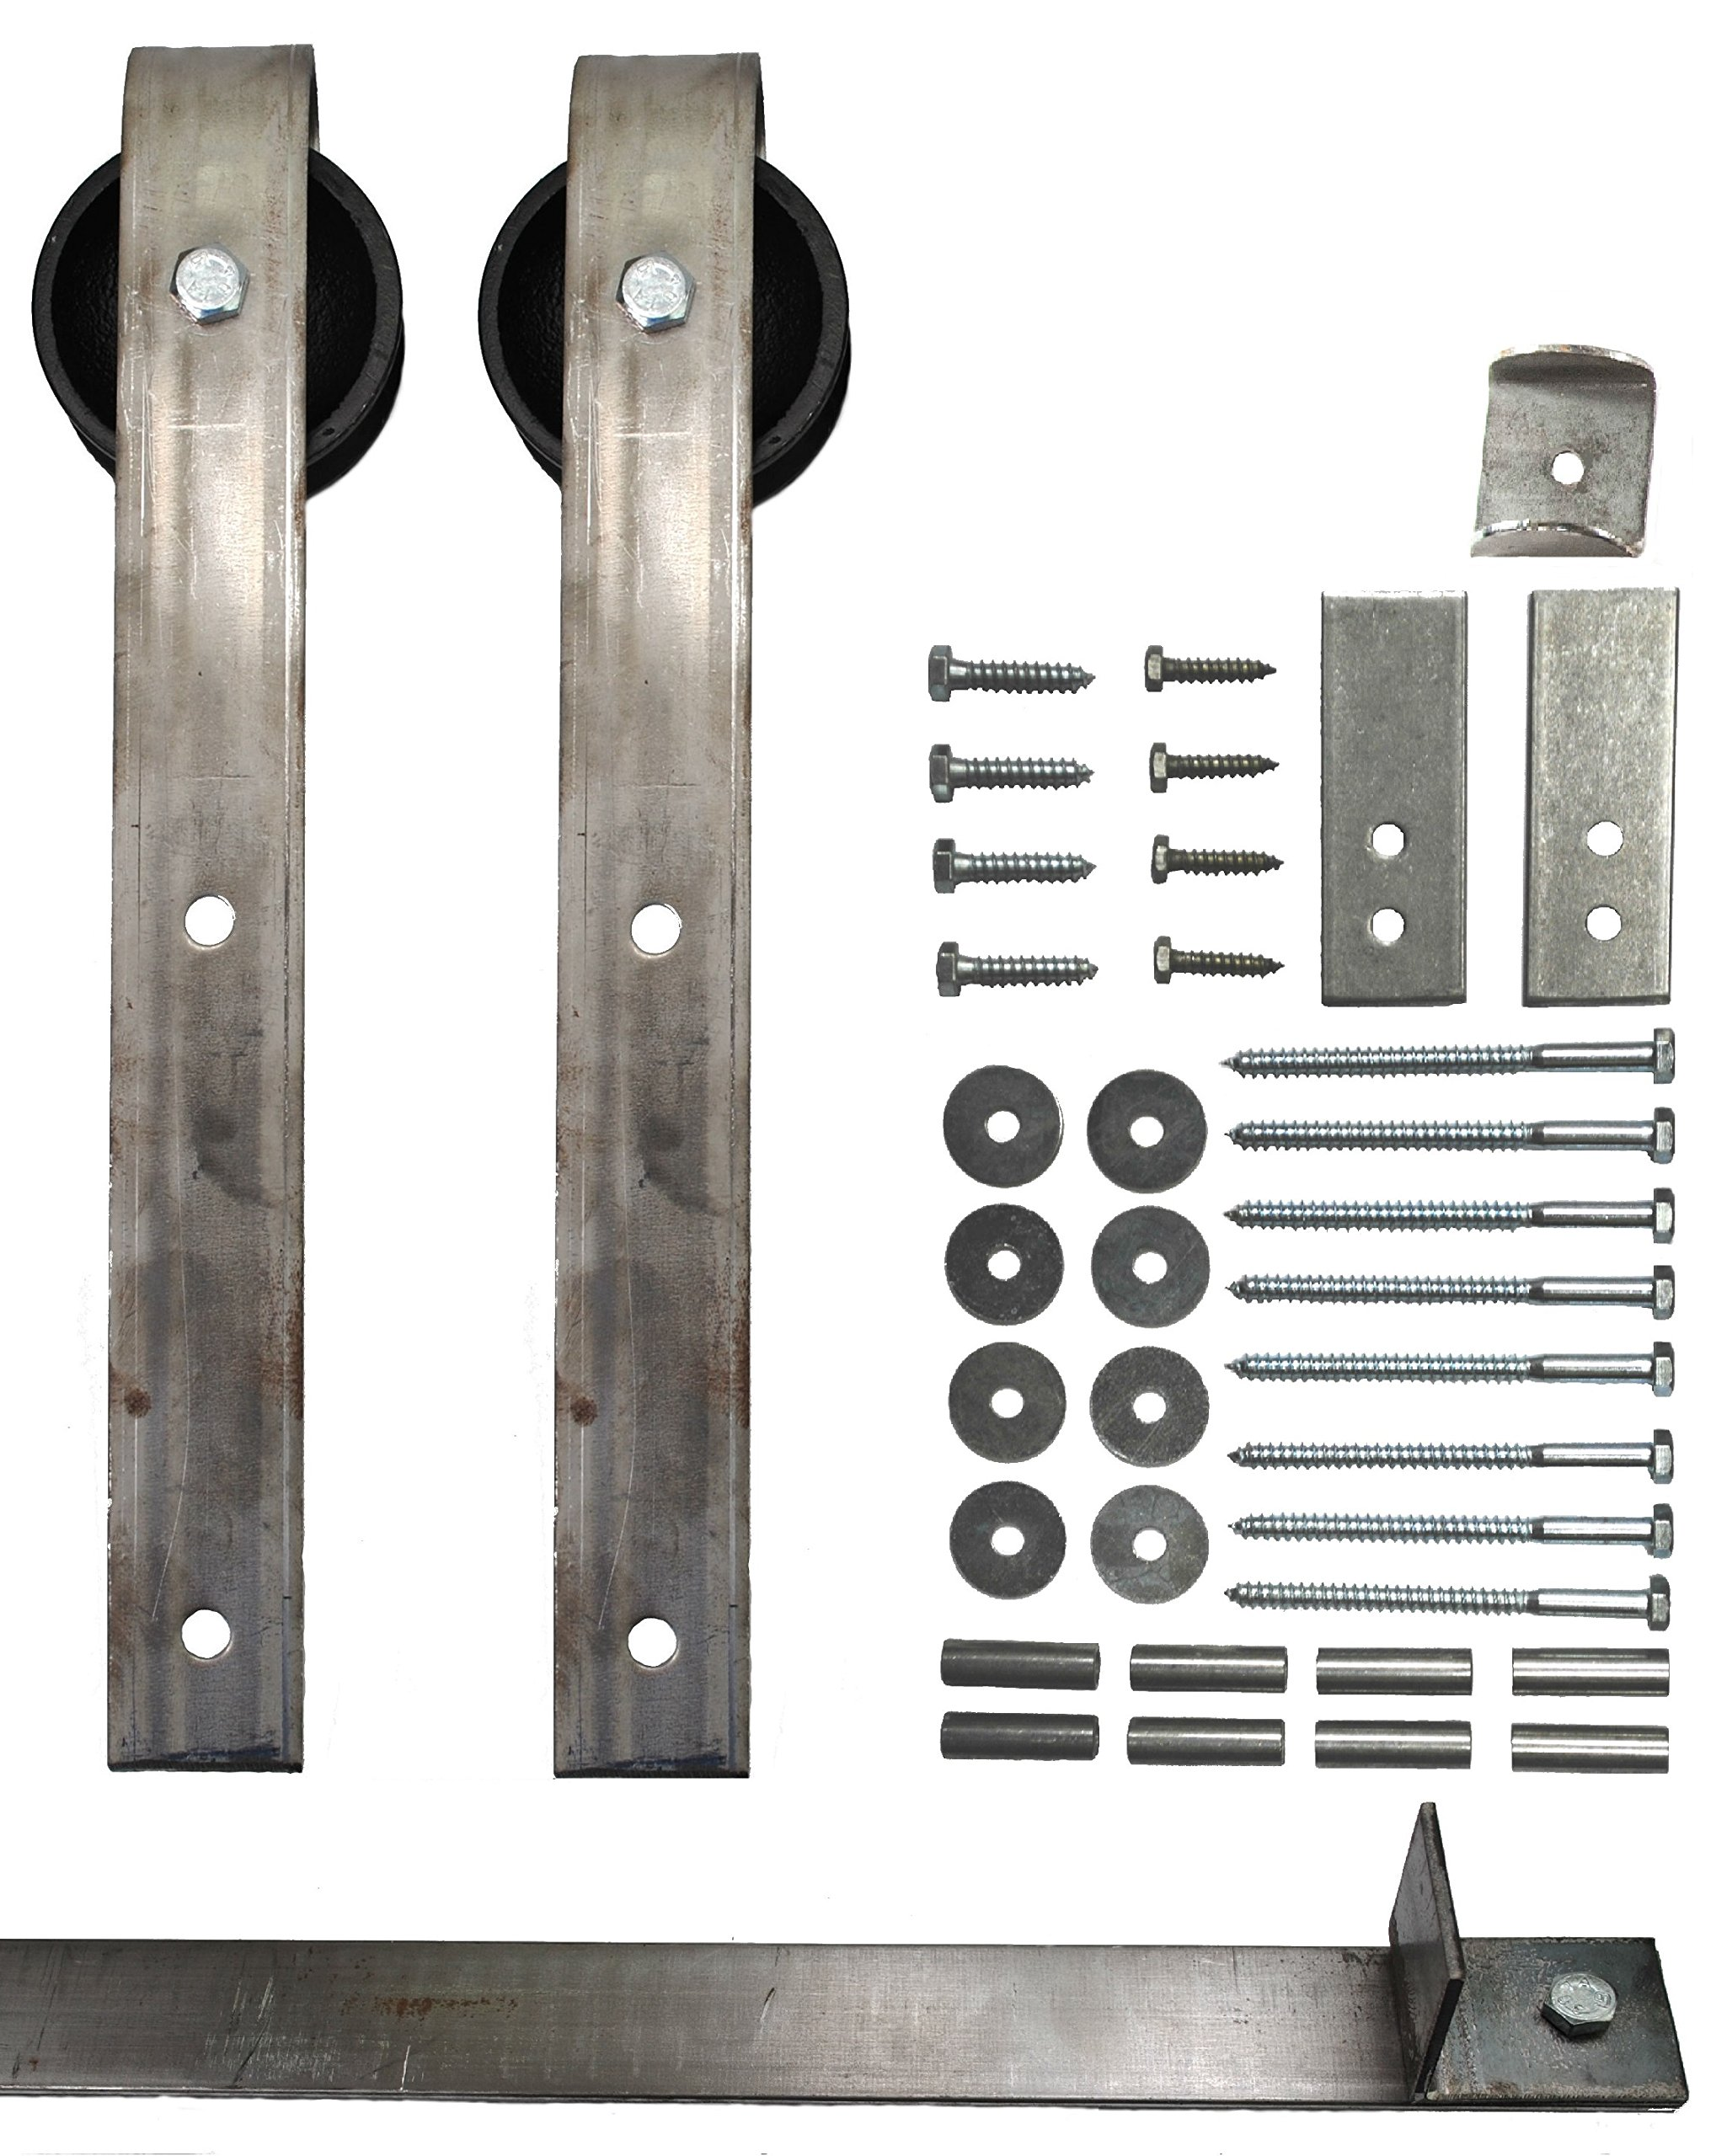 Sliding Barn Door Hardware Kit with 5 Ft. Track Included - Made in USA